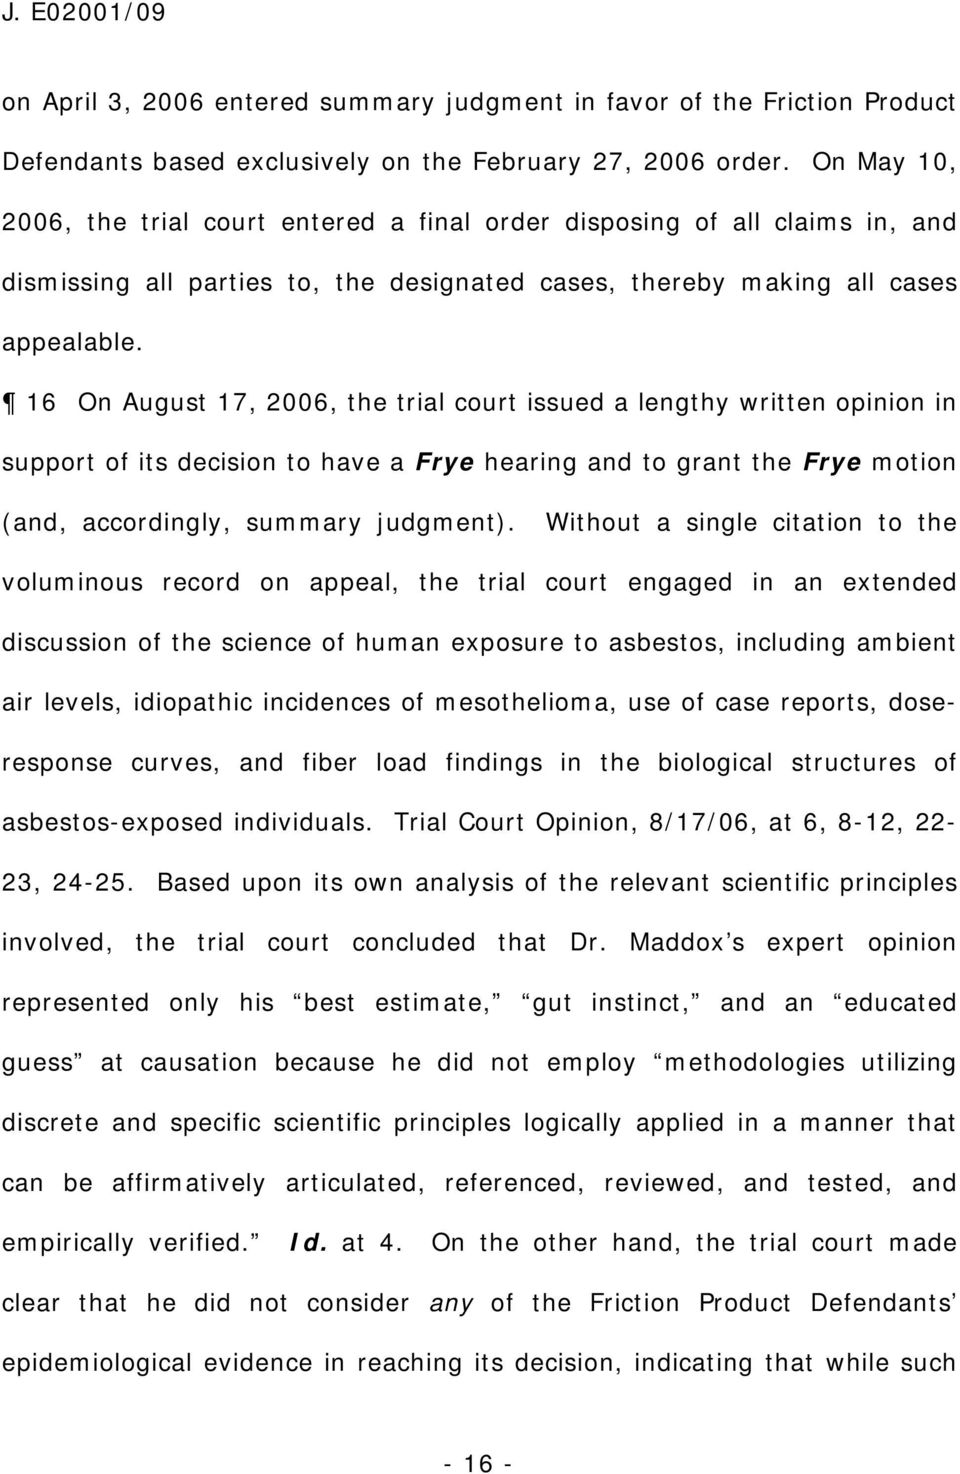 16 On August 17, 2006, the trial court issued a lengthy written opinion in support of its decision to have a Frye hearing and to grant the Frye motion (and, accordingly, summary judgment).